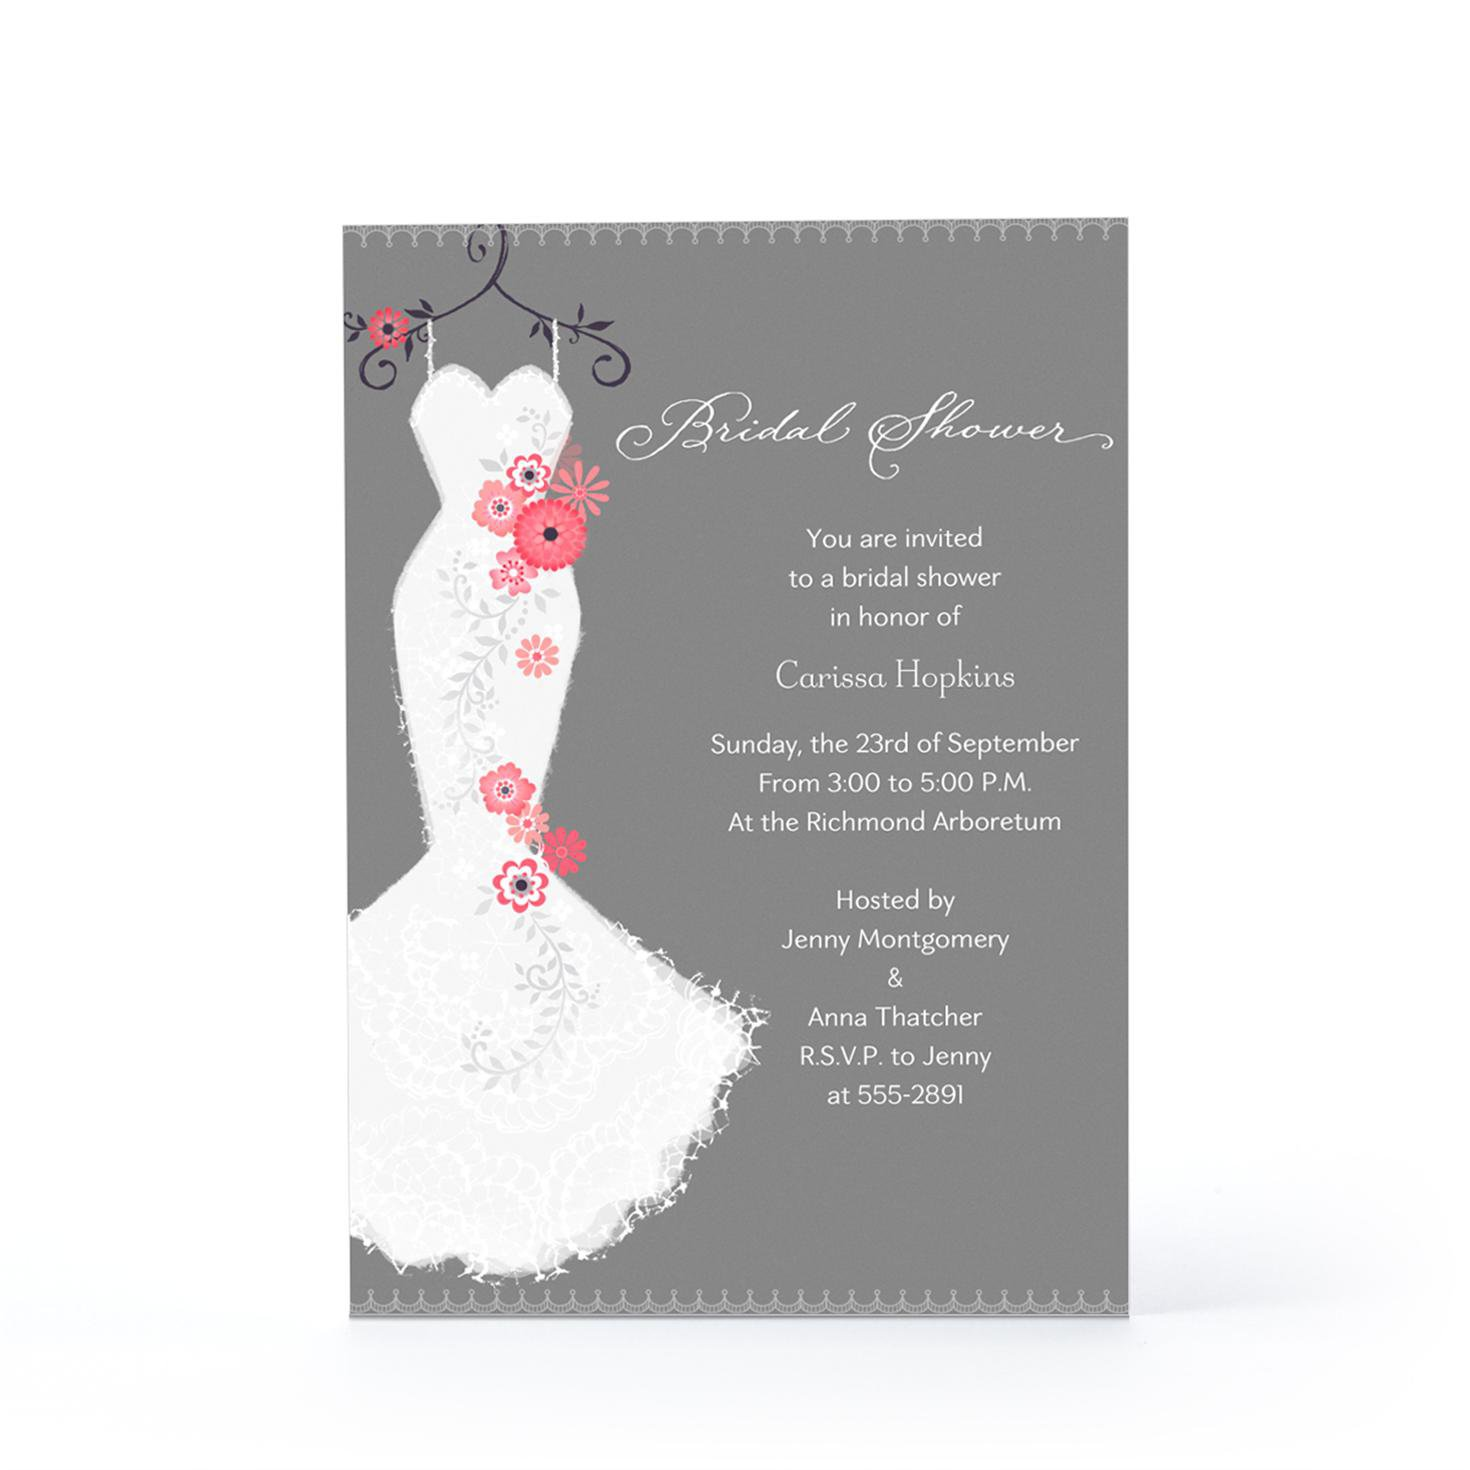 hallmark free printable wedding invitation